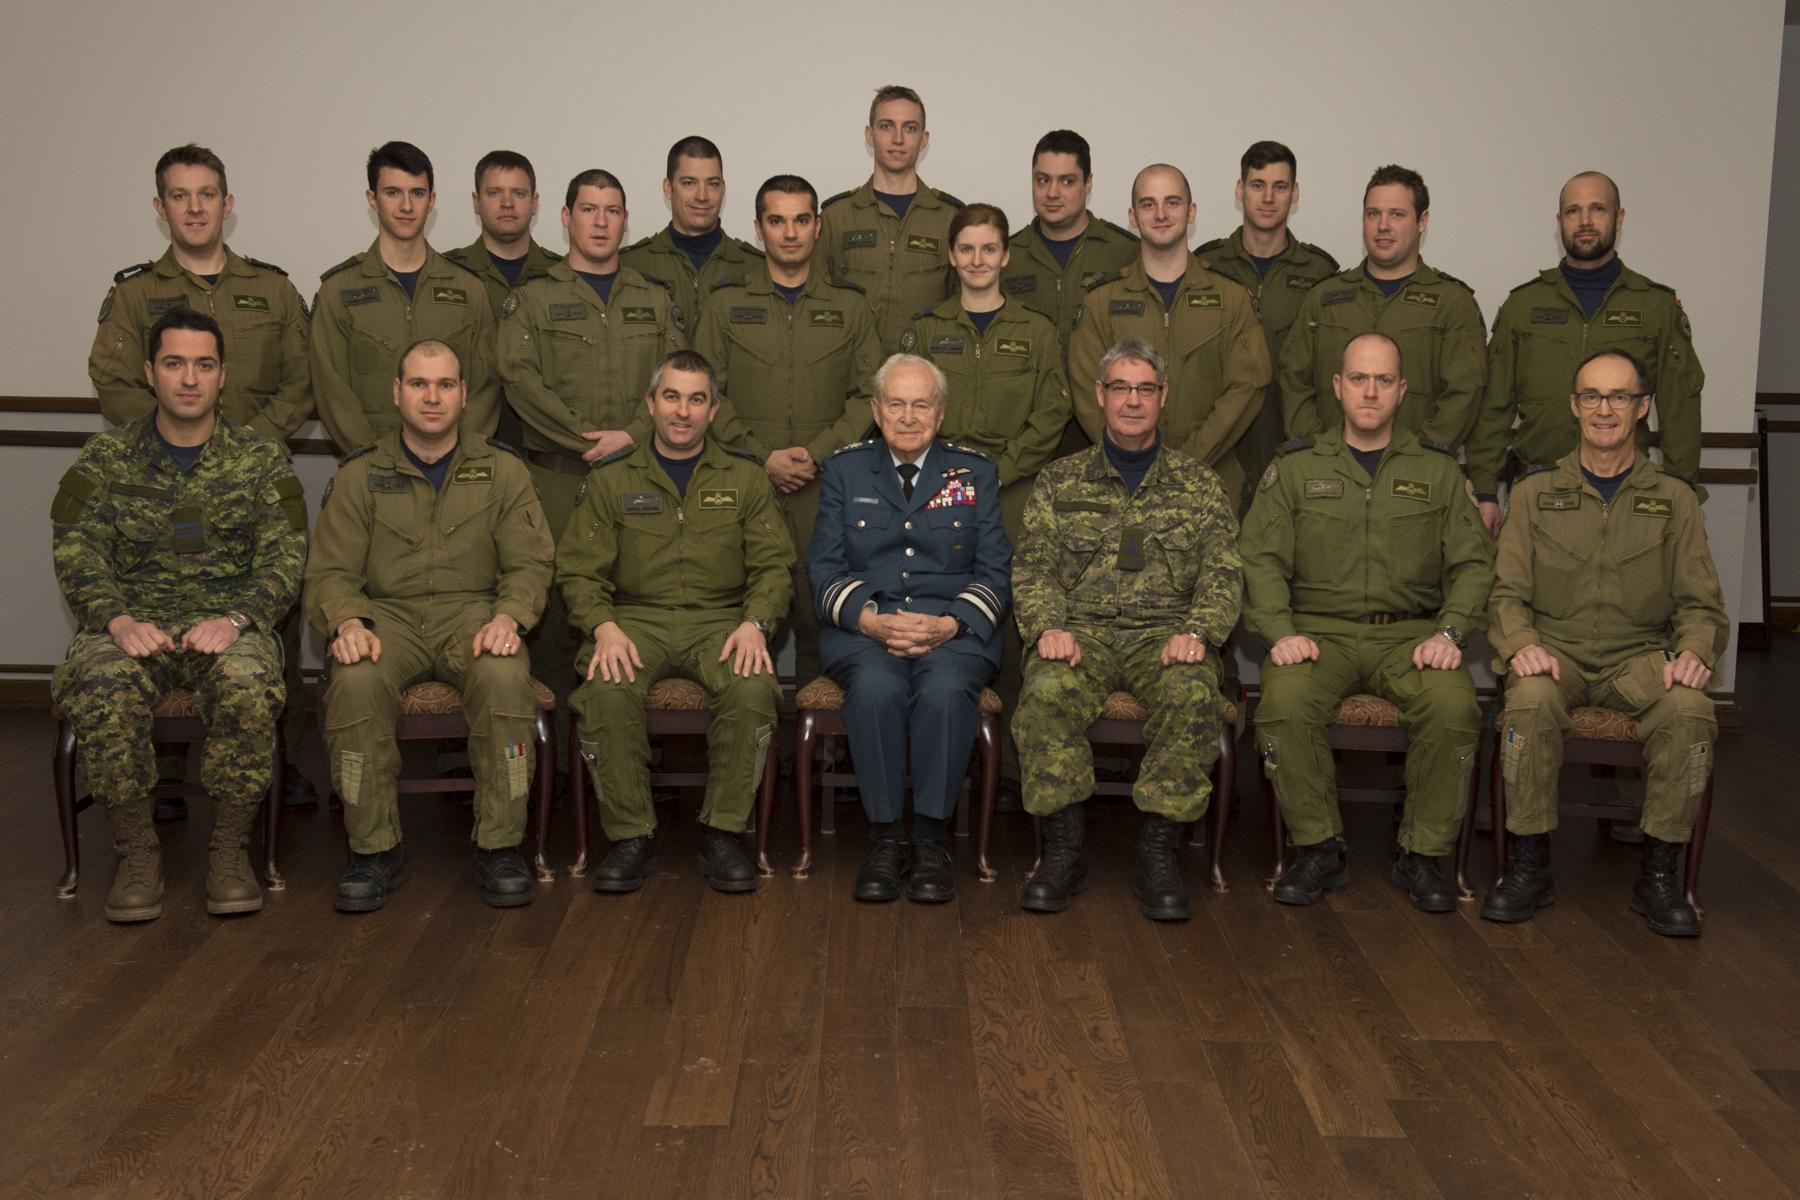 Members of 430 Tactical Helicopter Squadron had a unique opportunity to meet the last surviving Second World War pilot of 430 Squadron. Honorary Lieutenant-General Richard Rohmer (92 years) completed 135 operational missions during the war, flying the P-51 Mustang. An RCAF legend still alive and well... PHOTO: 430 Squadron